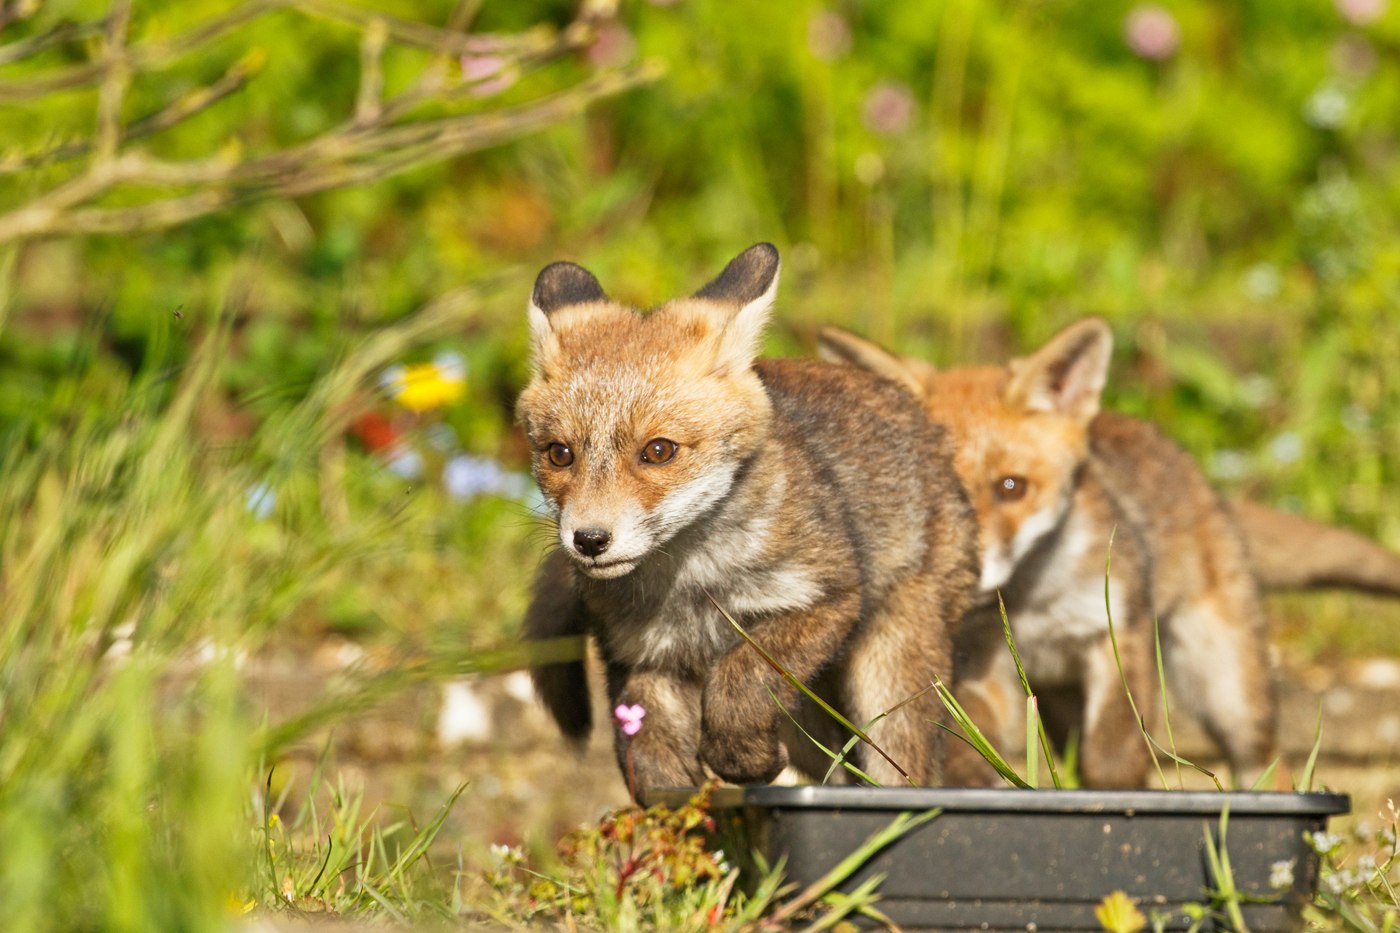 The fox cubs enjoy the afternoon sunshine, minded by Pretty Vixen (a 'helper' vixen) who is just over a ear old and is probably a half-sister to this brood.